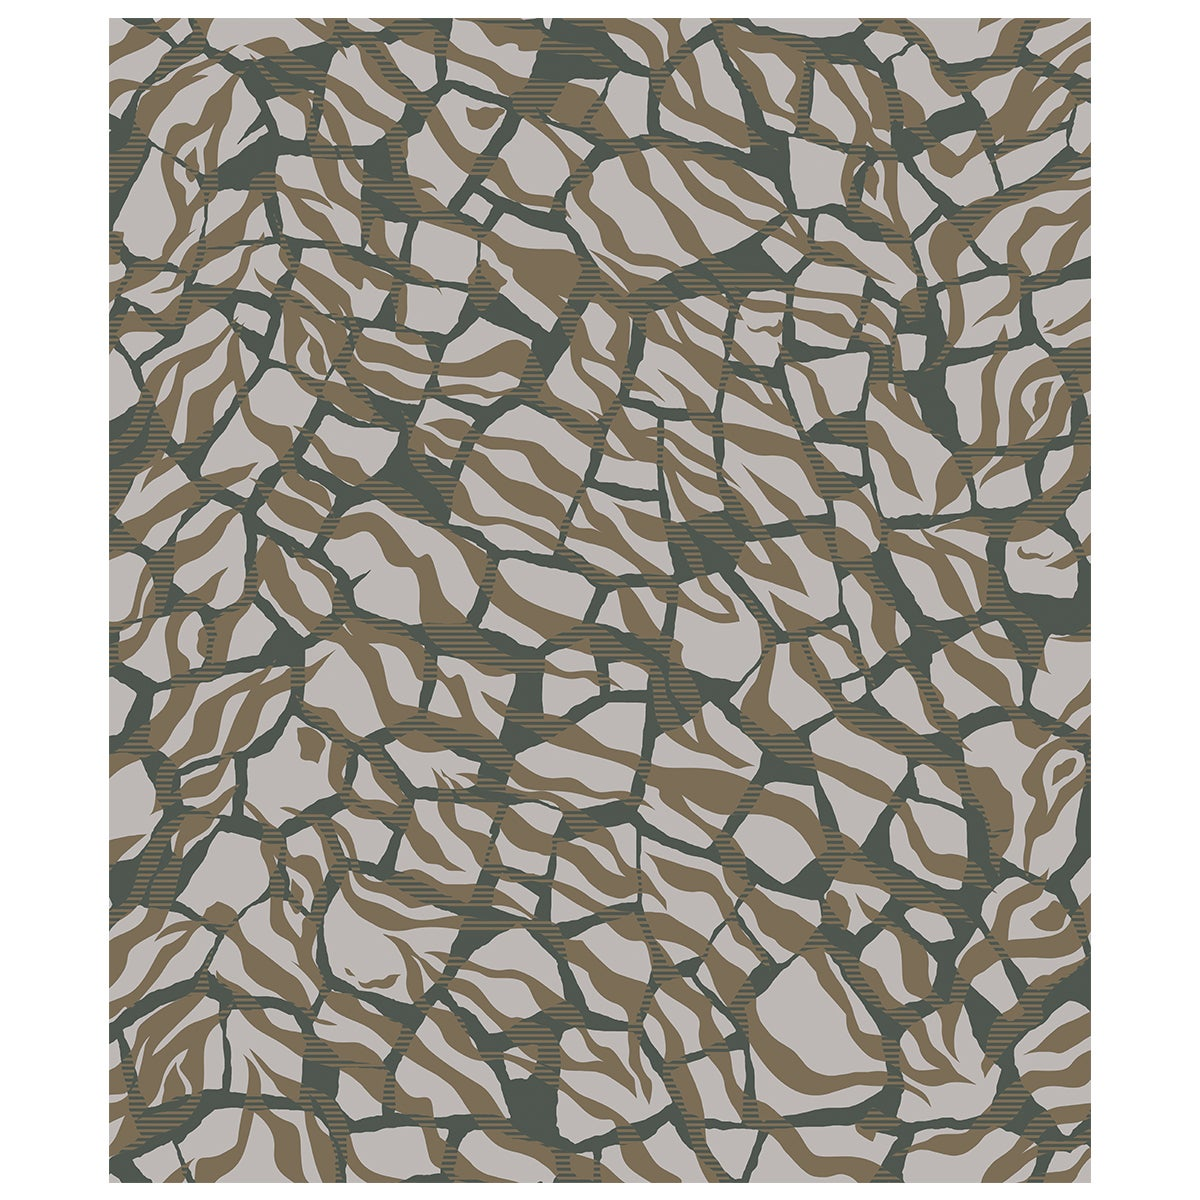 Tigertwiga Rug in Wool and Bamboo Silk by Roberto Cavalli Home Interiors